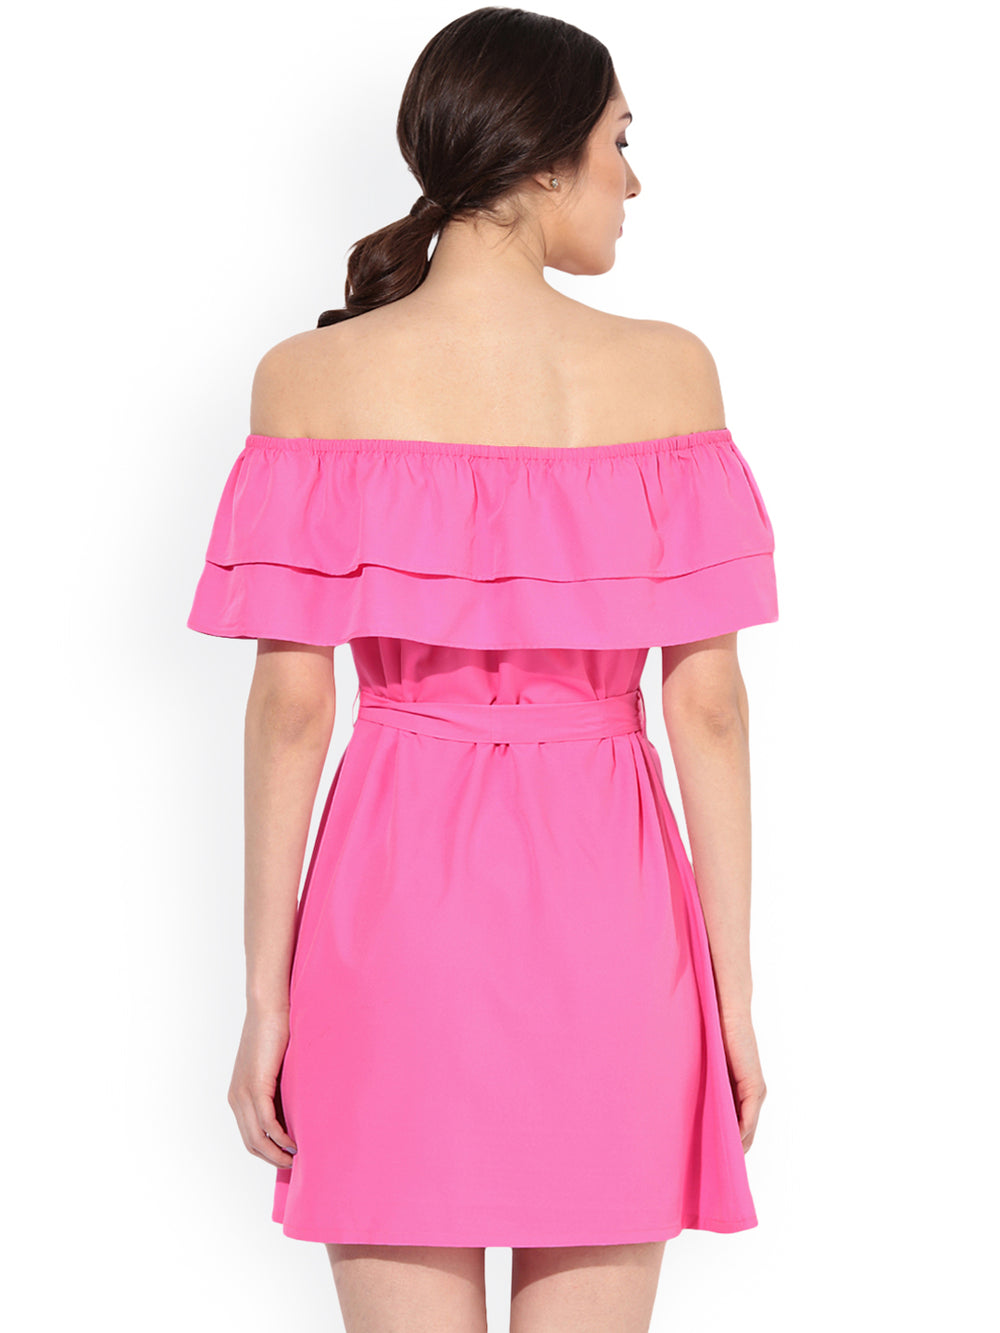 Besiva Women Pink Solid A-Line Bardot Dress